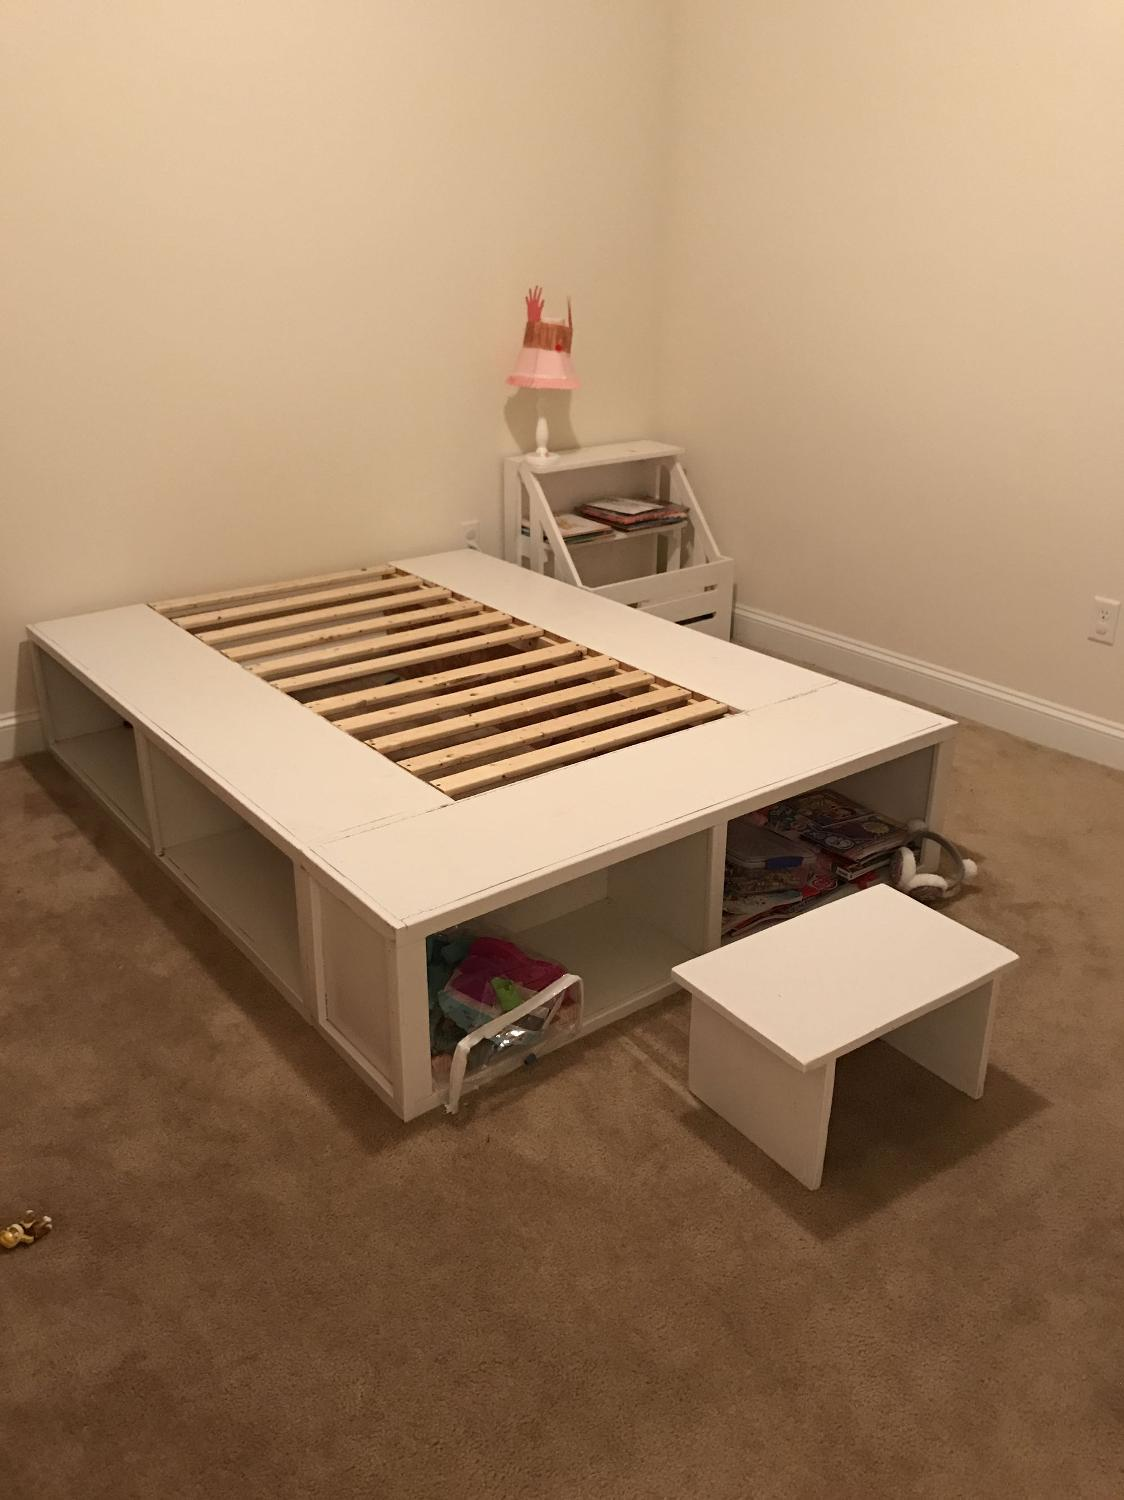 Find More Storage Bed And Nightstand For Sale At Up To 90 Off Greenville Sc